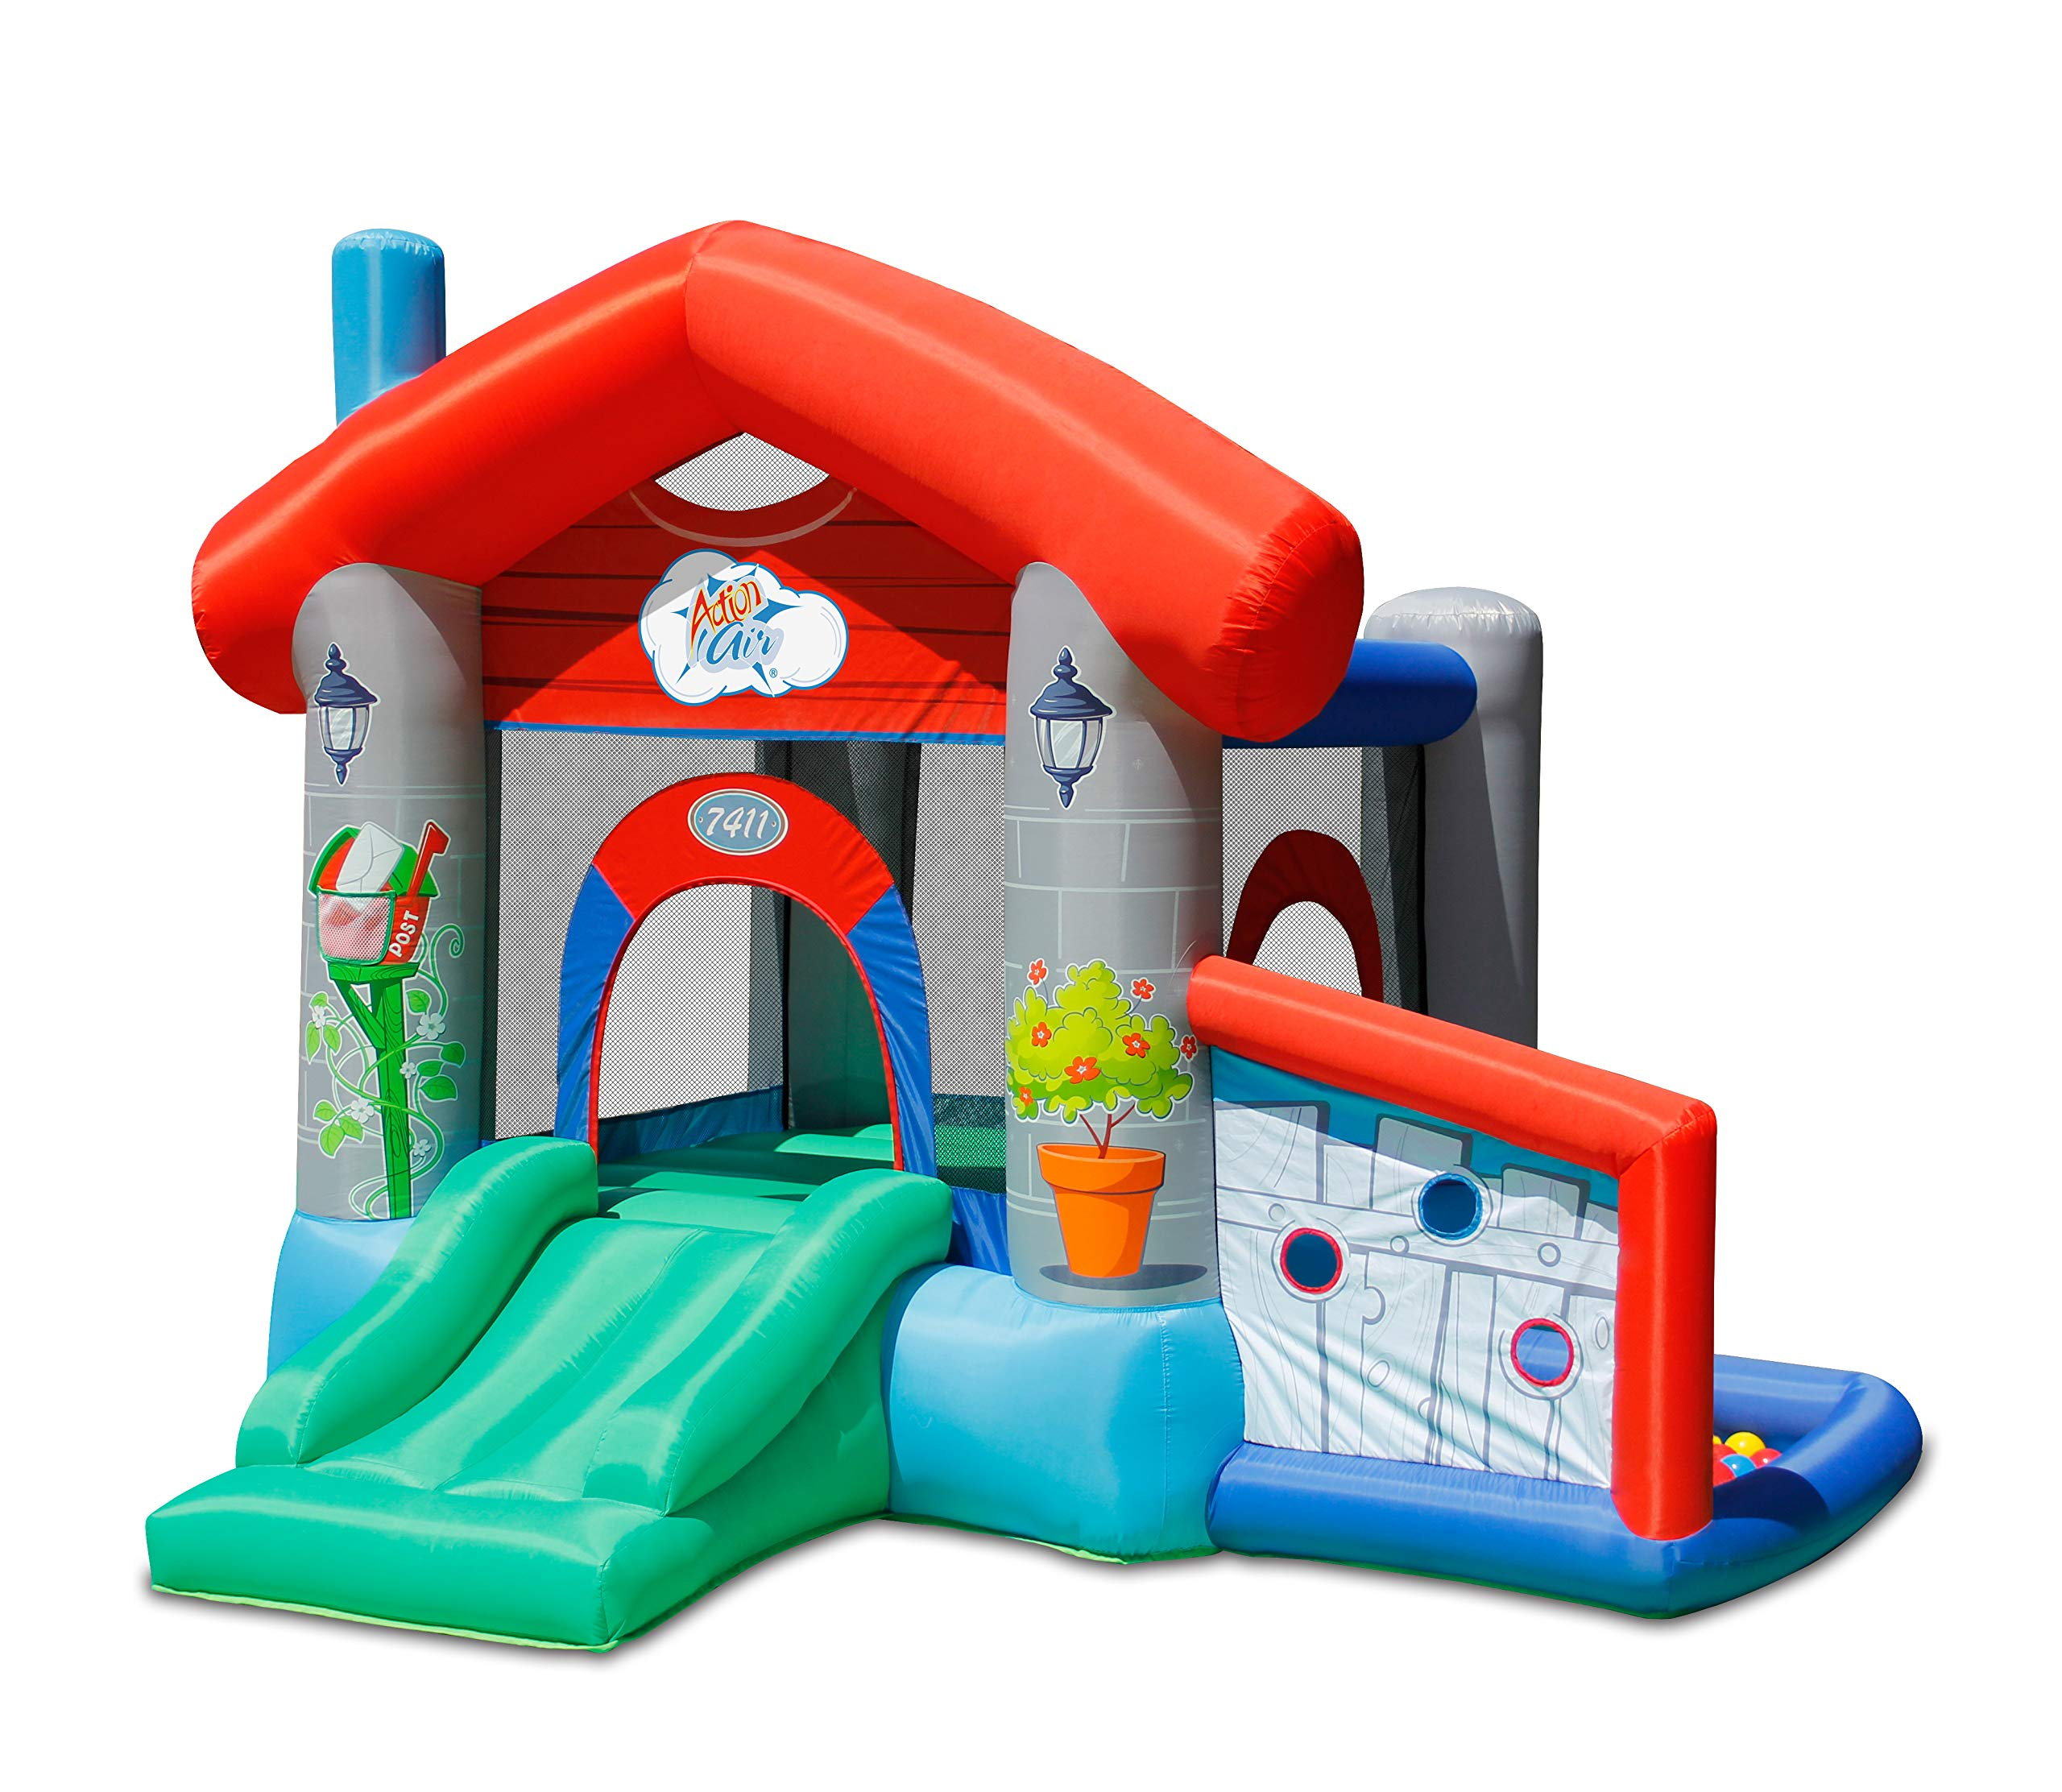 ACTION AIR Castle House, Inflatable Castle with 30 Pit Balls, Jumping Castle with Slide for Outdoor and Indoor